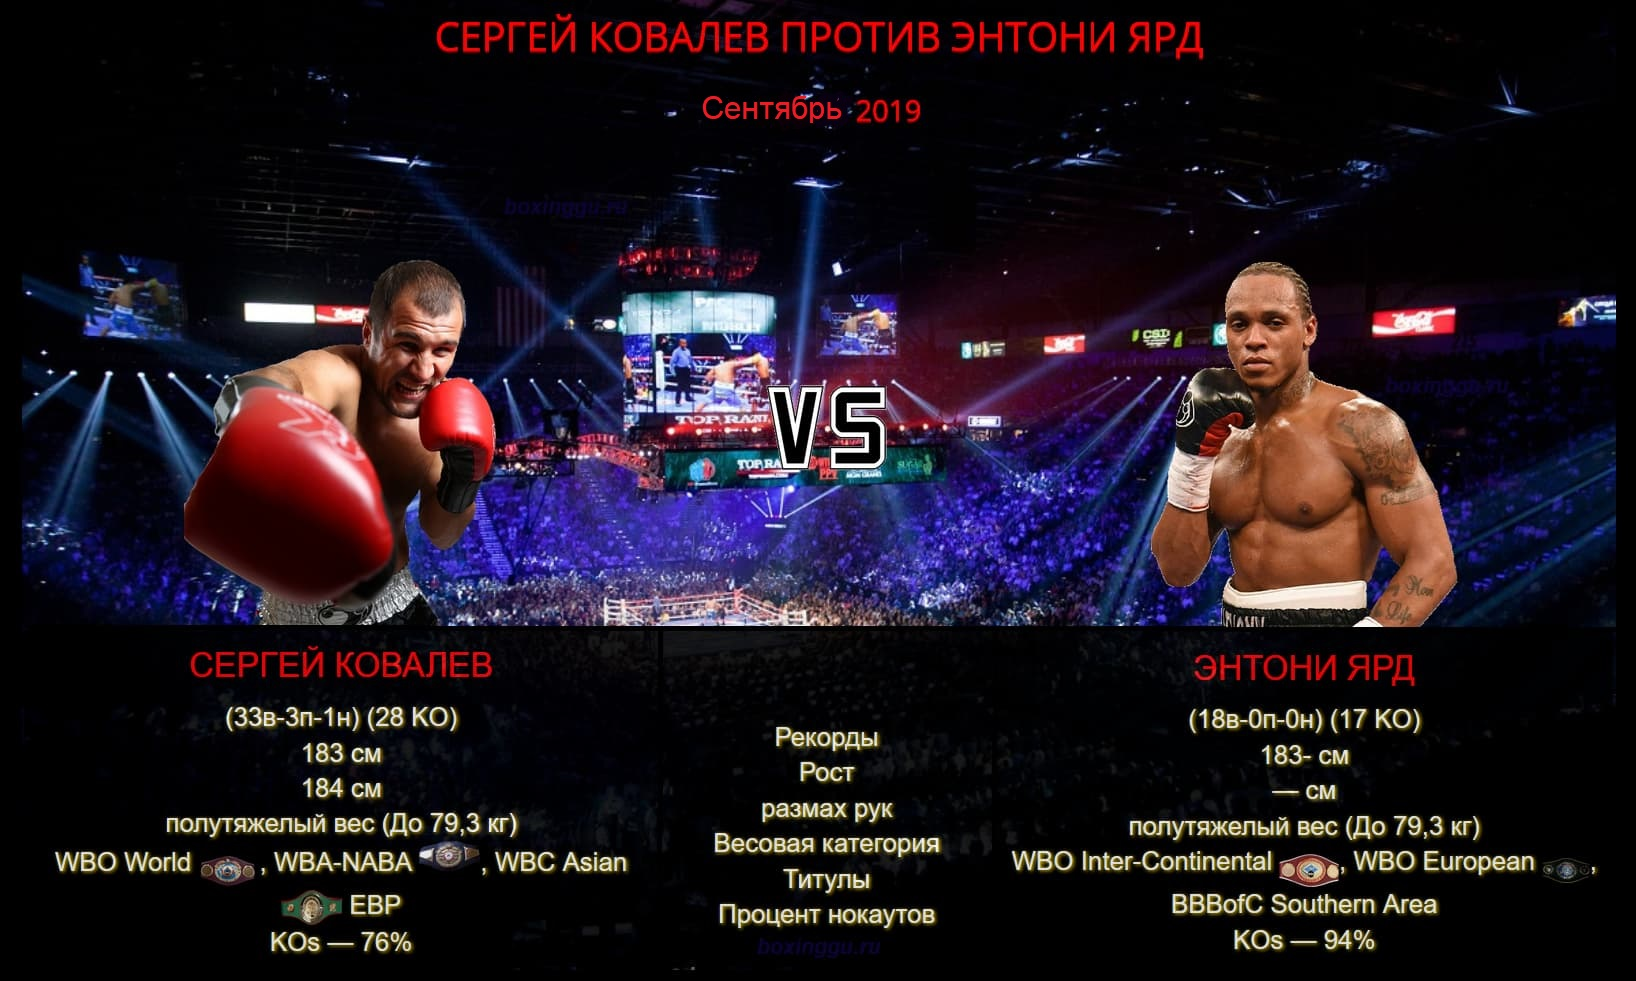 Афиша: Бой Сергей Ковалев против Энтони Ярда - Sergey Kovalev vs Anthony Yarde